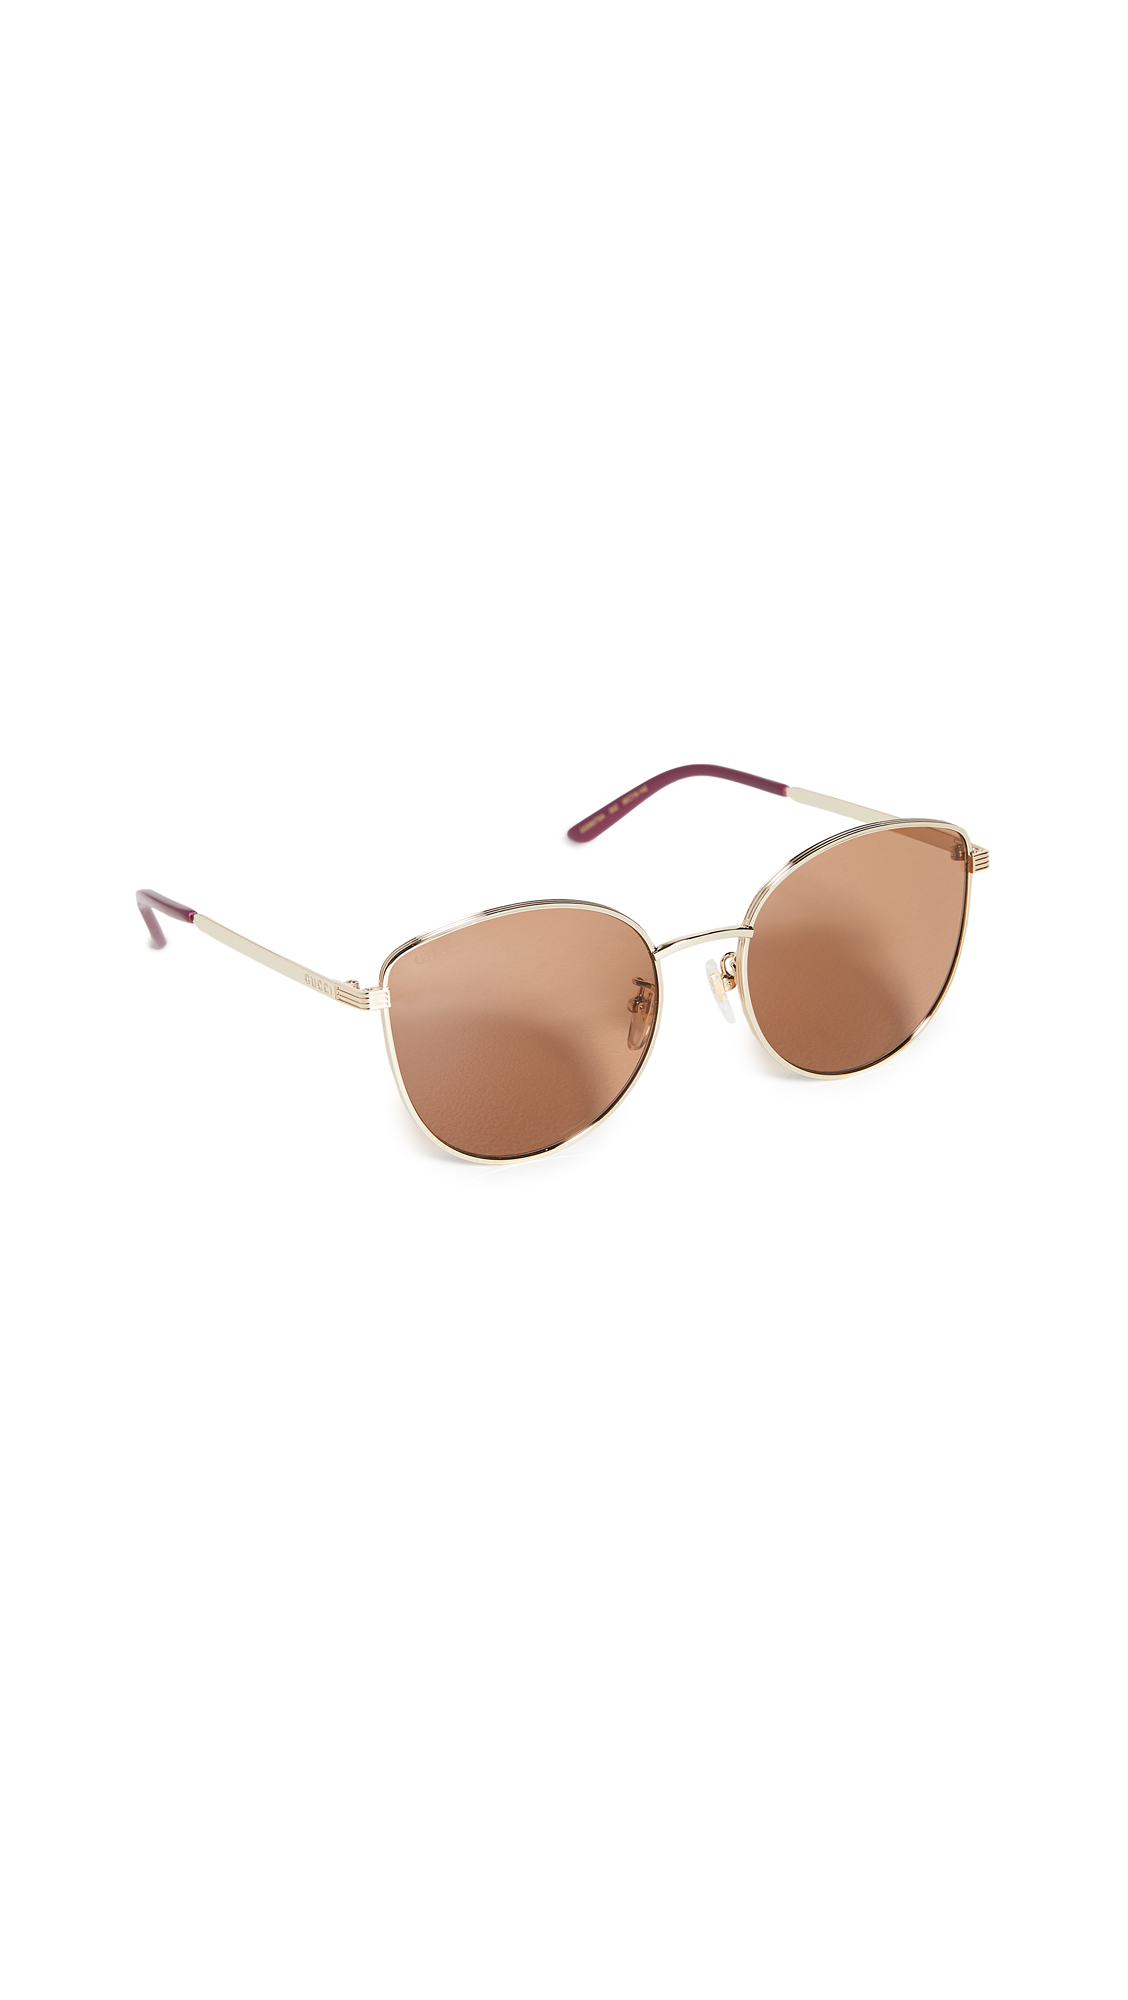 Gucci Light Metal Feminine Cat Eye Sunglasses In Gold Gold Brown